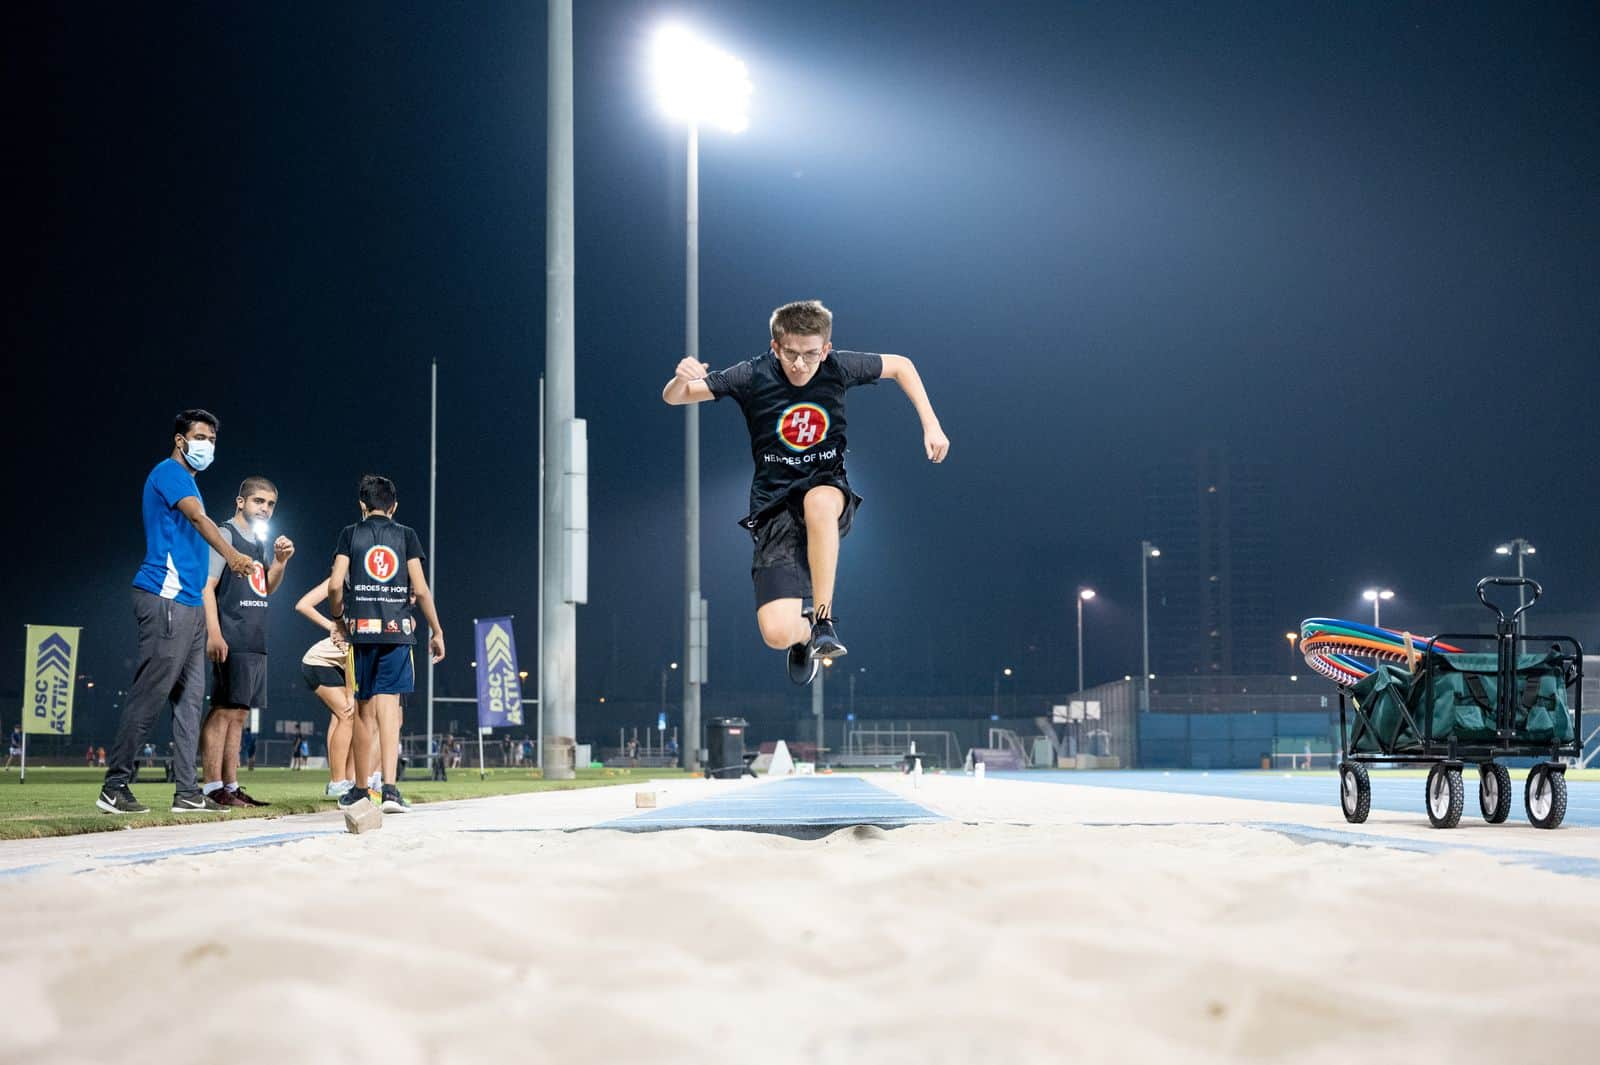 Heroes of Hope Athlete Jumping in sand